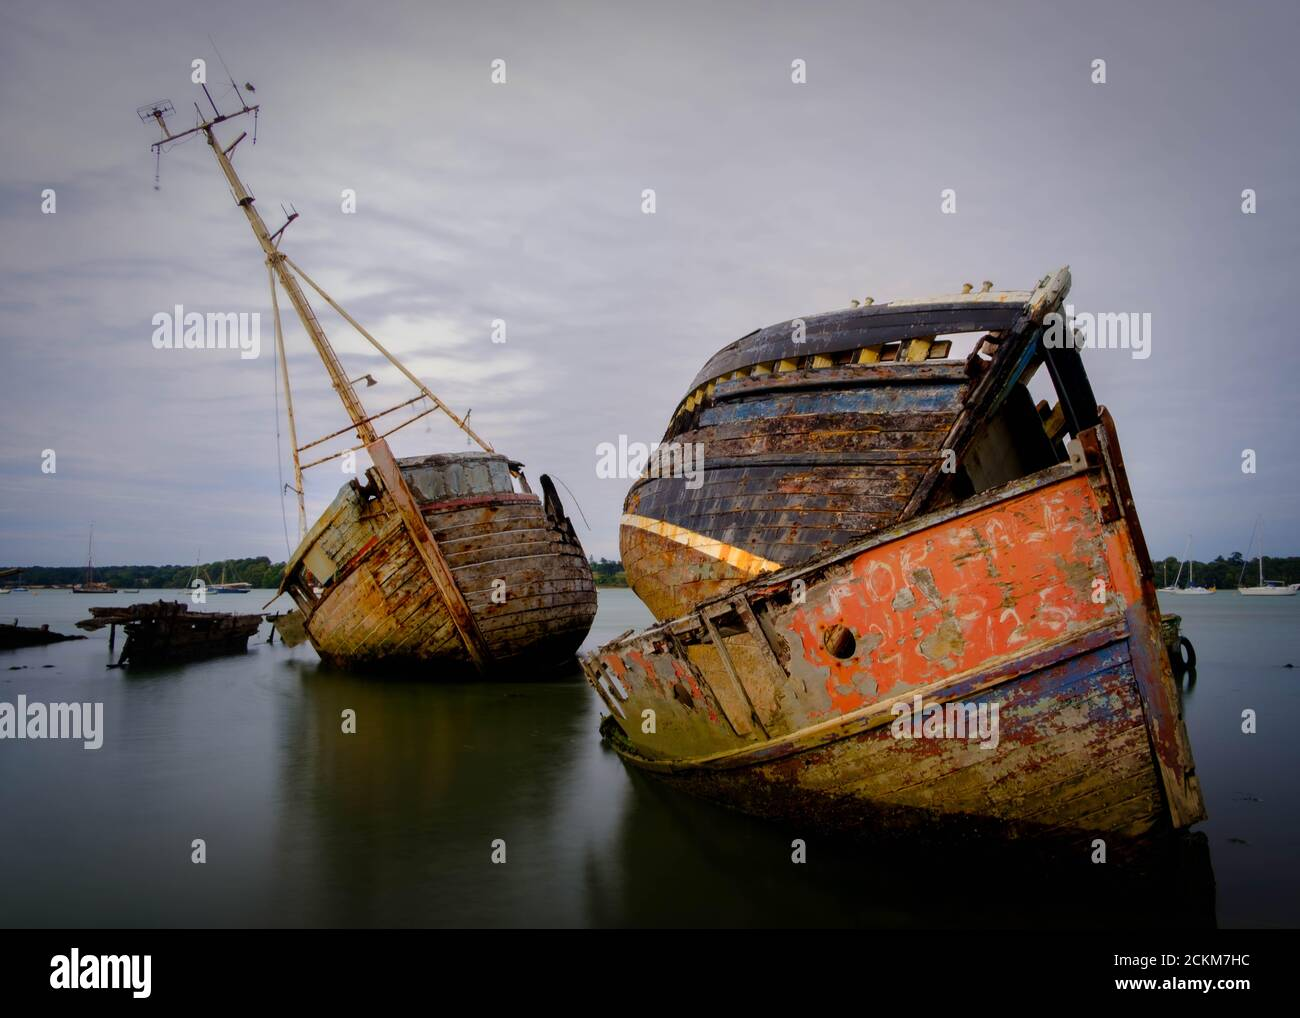 Boat graveyard at Pin Mill on the river Orwell, Shotley Peninsula, near Ipswich, Suffolk, UK Stock Photo